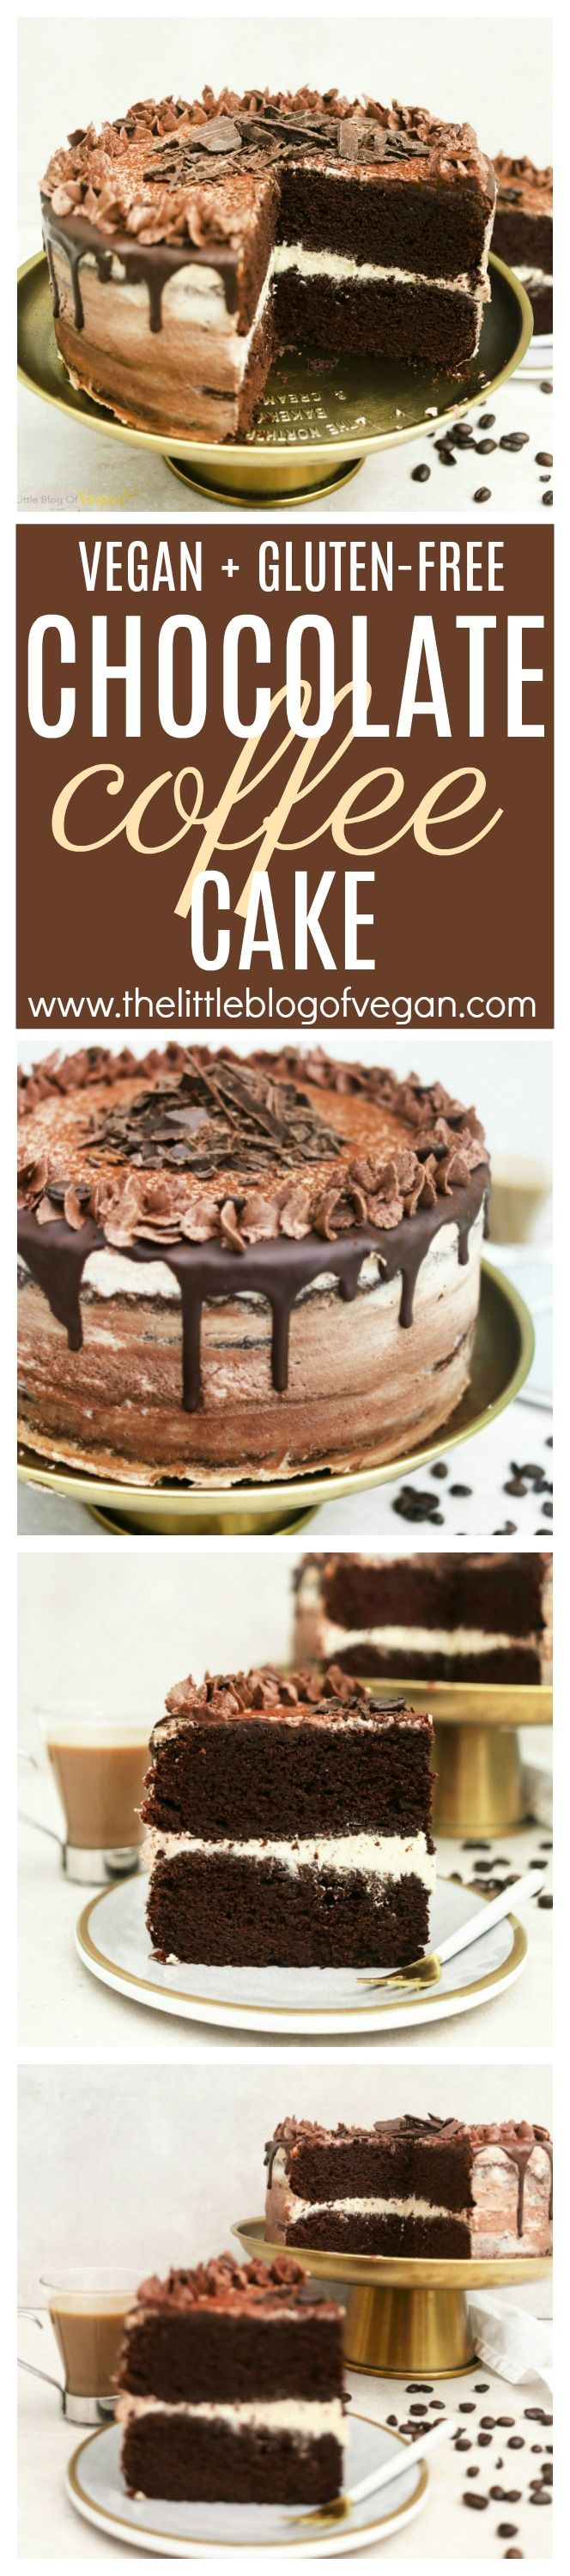 Vegan + gluten-free chocolate coffee cake! A moist cake with a latte buttercream filling, with a chocolate & coffee buttercream coat! PS...its easy to make!